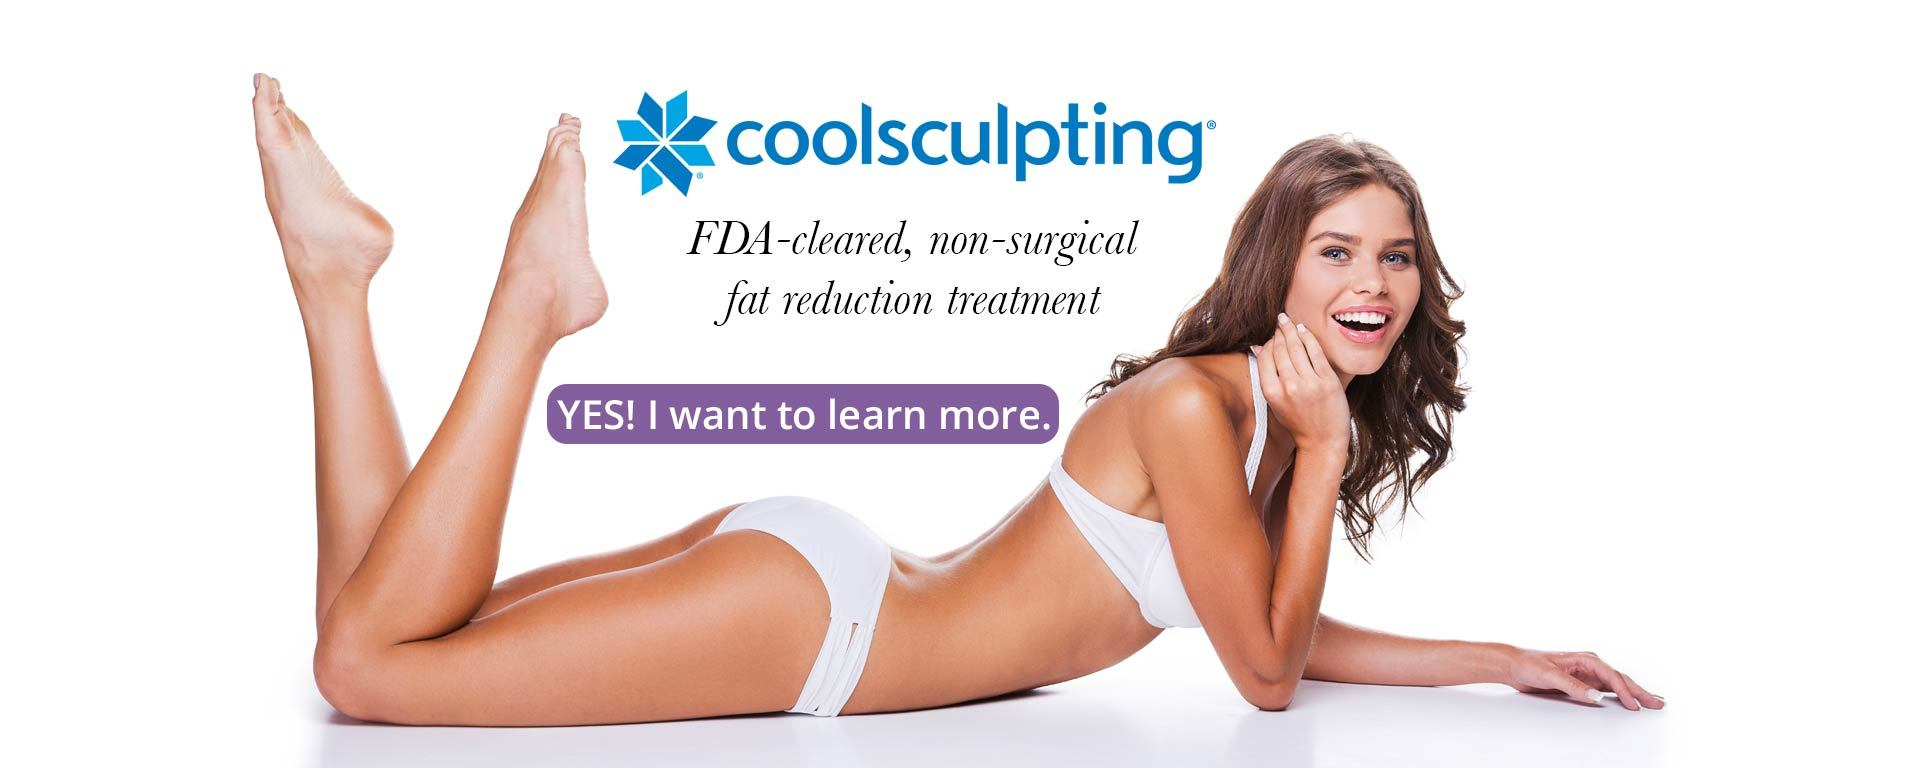 FDA-cleared, non-surgical fat reduction treatment.